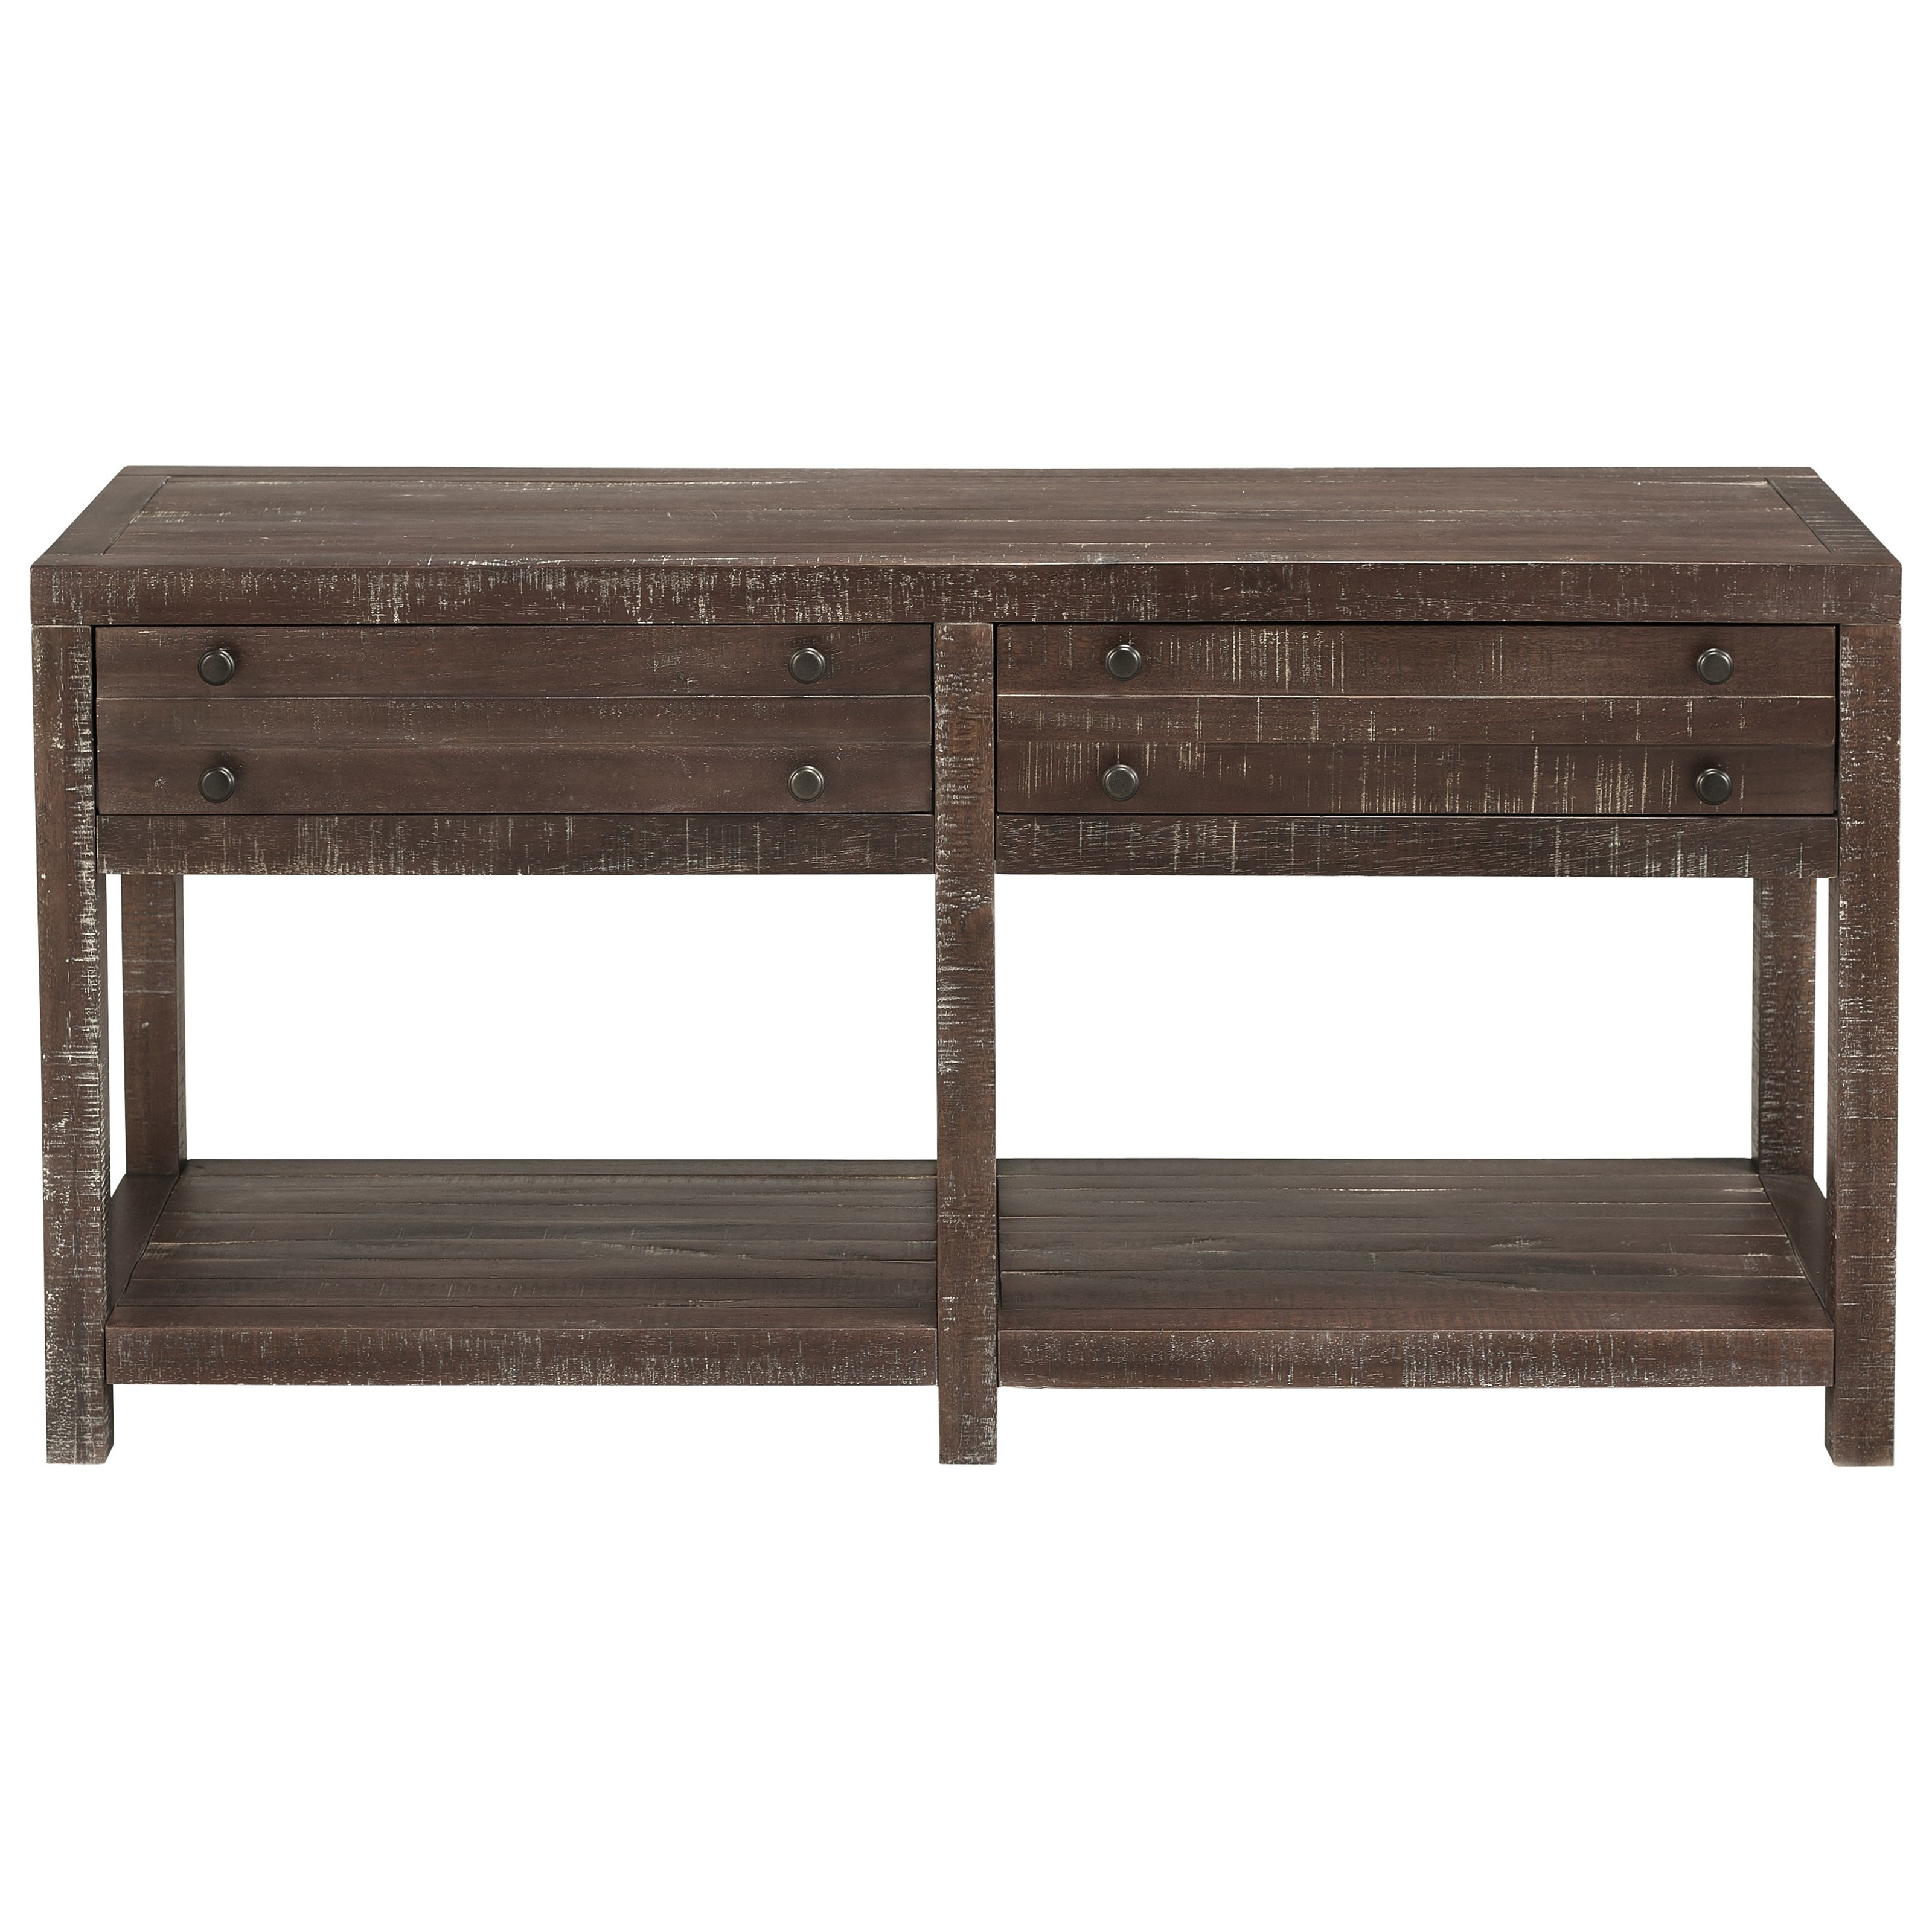 Modus International Townsend Console Table   Item Number: 8T0623